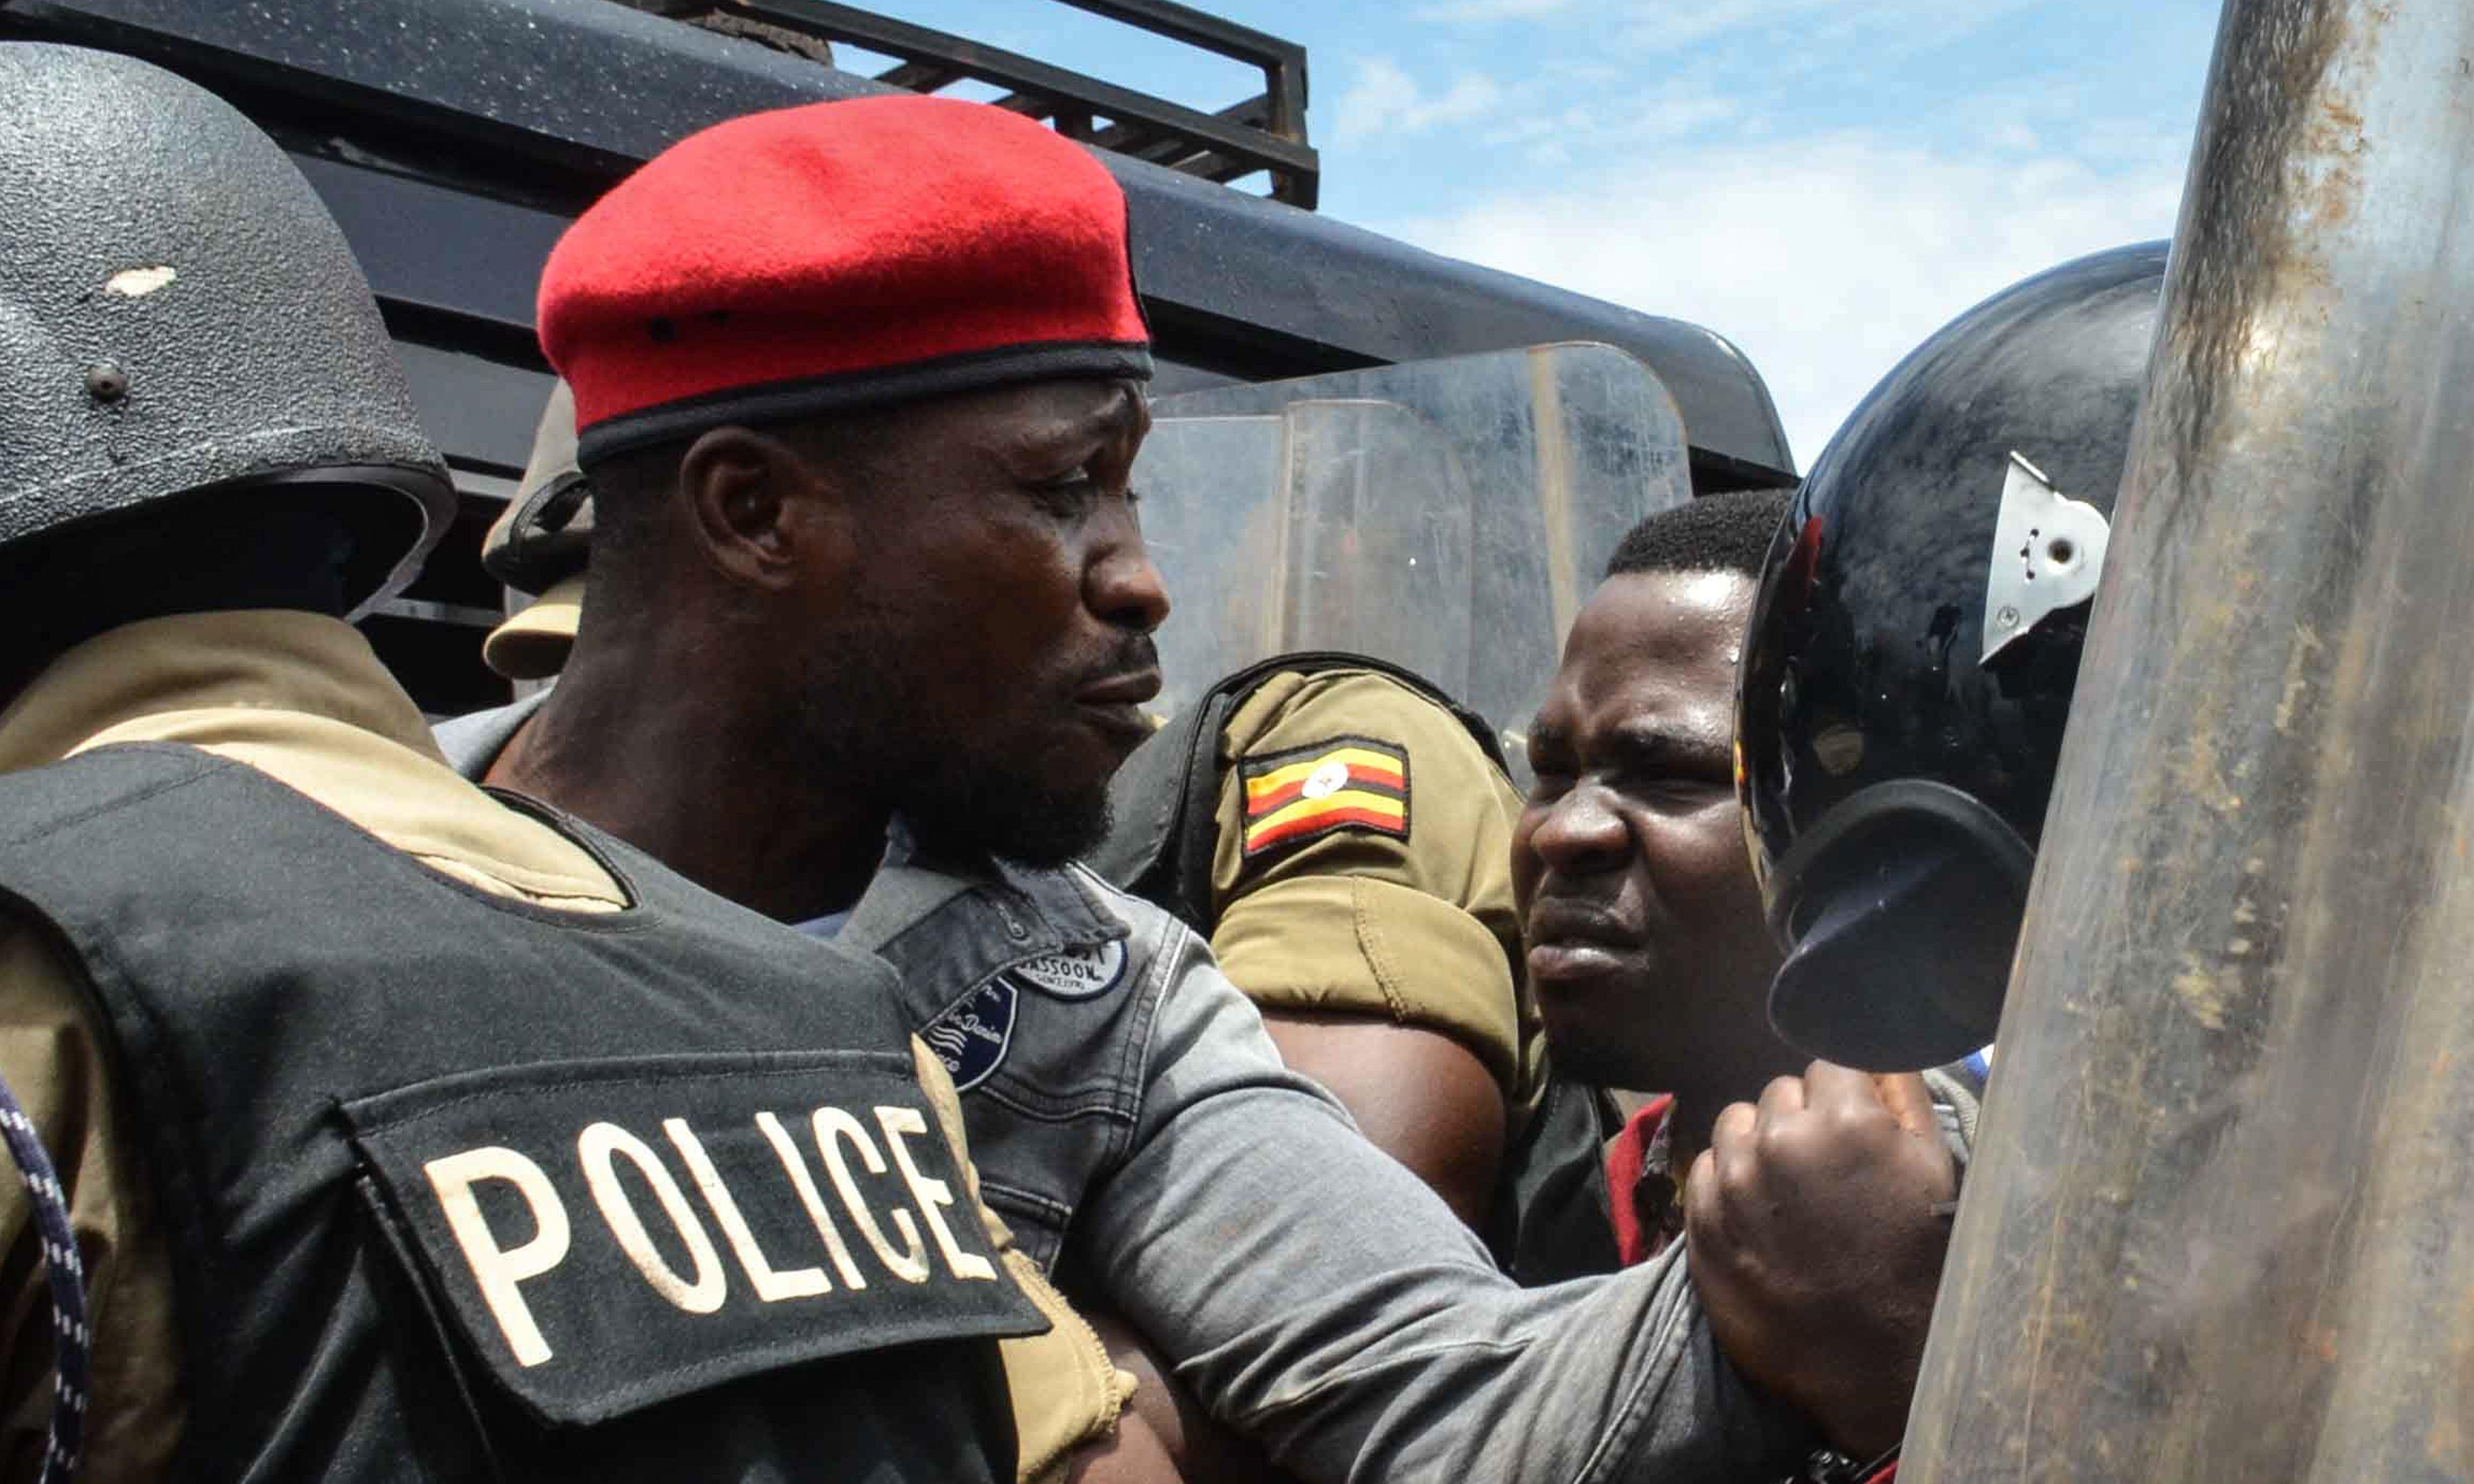 Ugandan police detain Bobi Wine and fire teargas at supporters